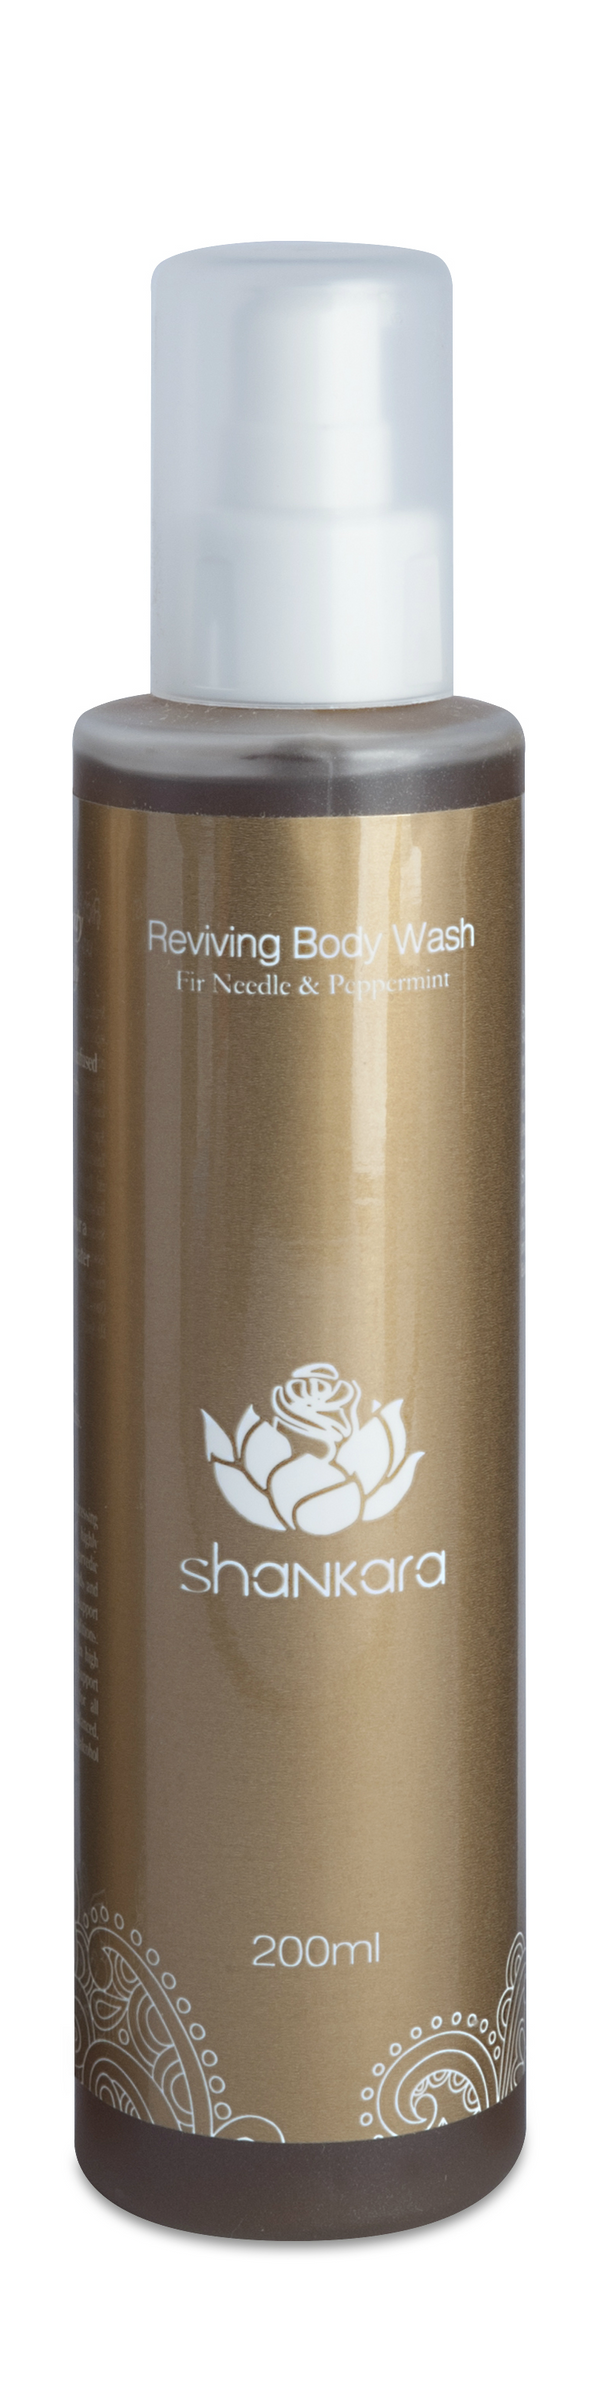 Reviving/Energizing Body Wash - Kapha (naaldboom, pepermunt, menthol)